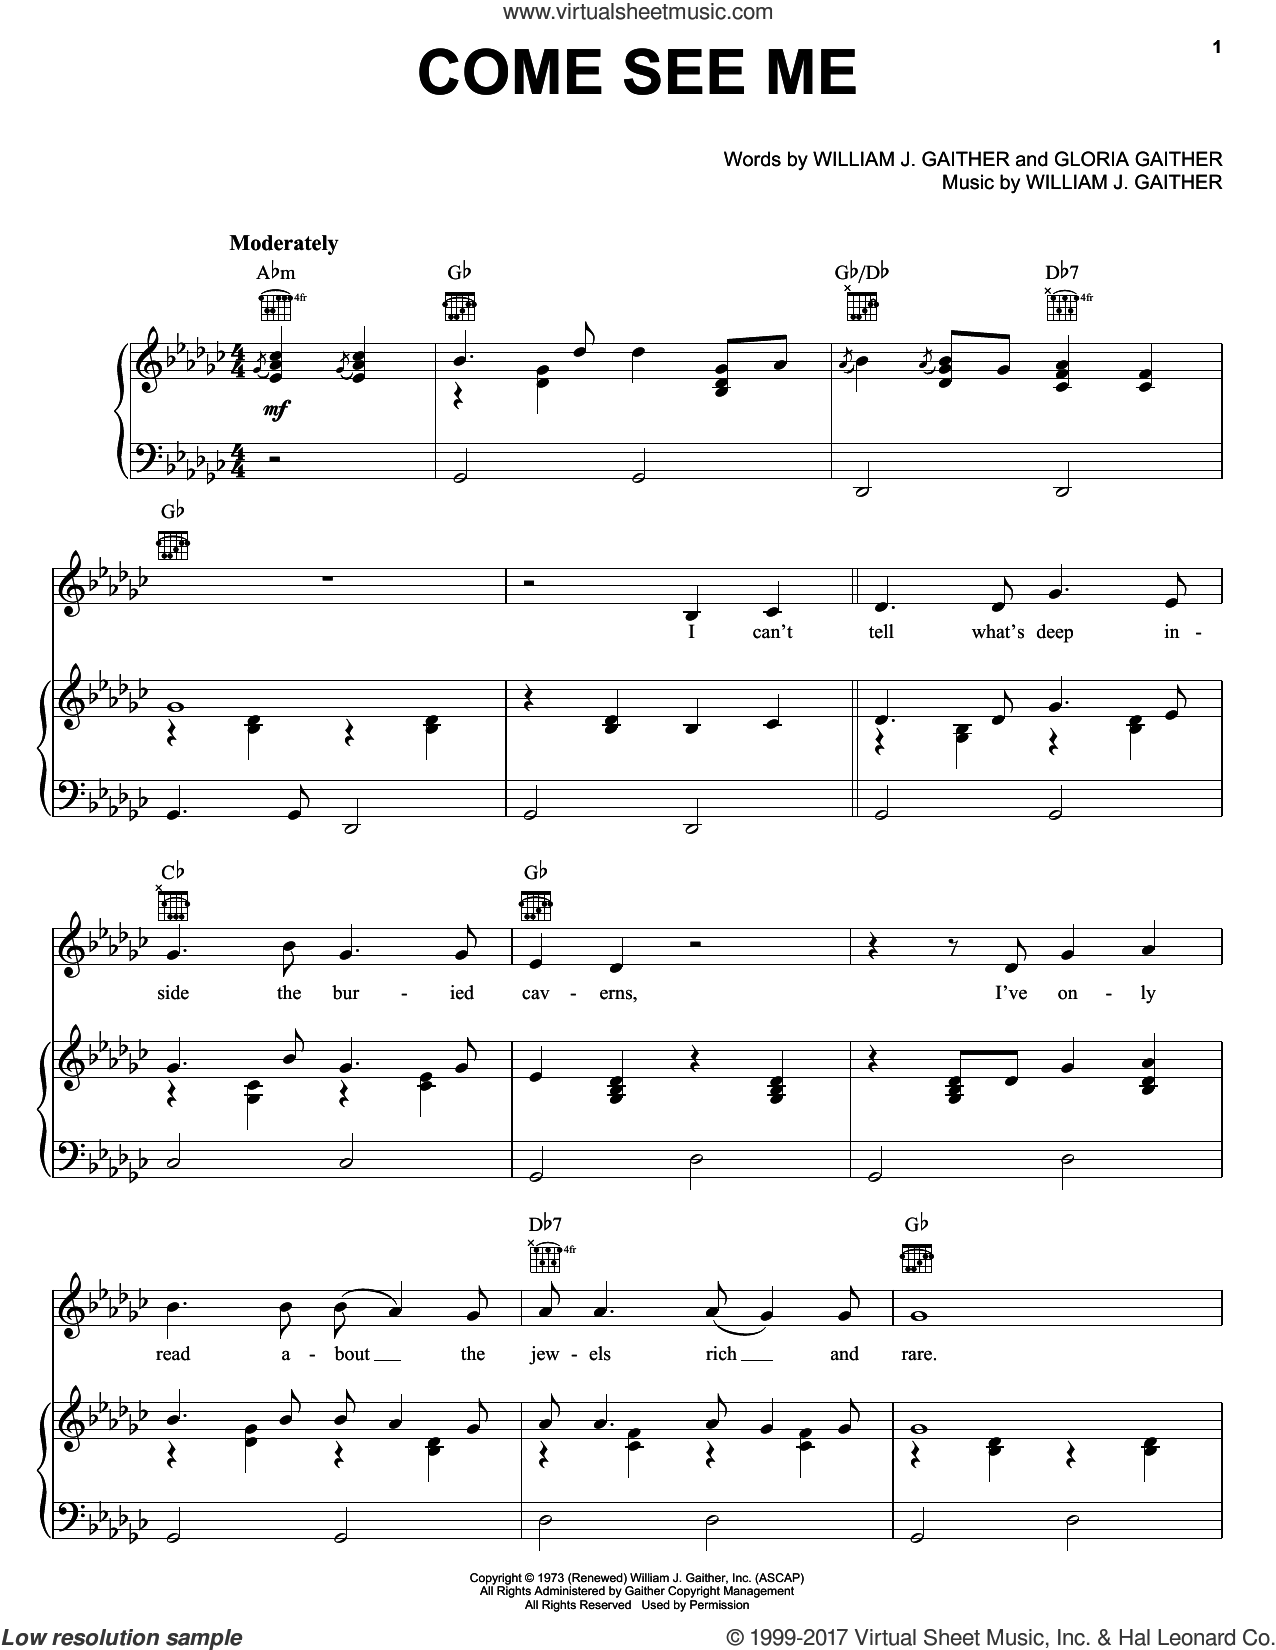 Come See Me sheet music for voice, piano or guitar by The Hoppers, Gloria Gaither and William J. Gaither, intermediate skill level